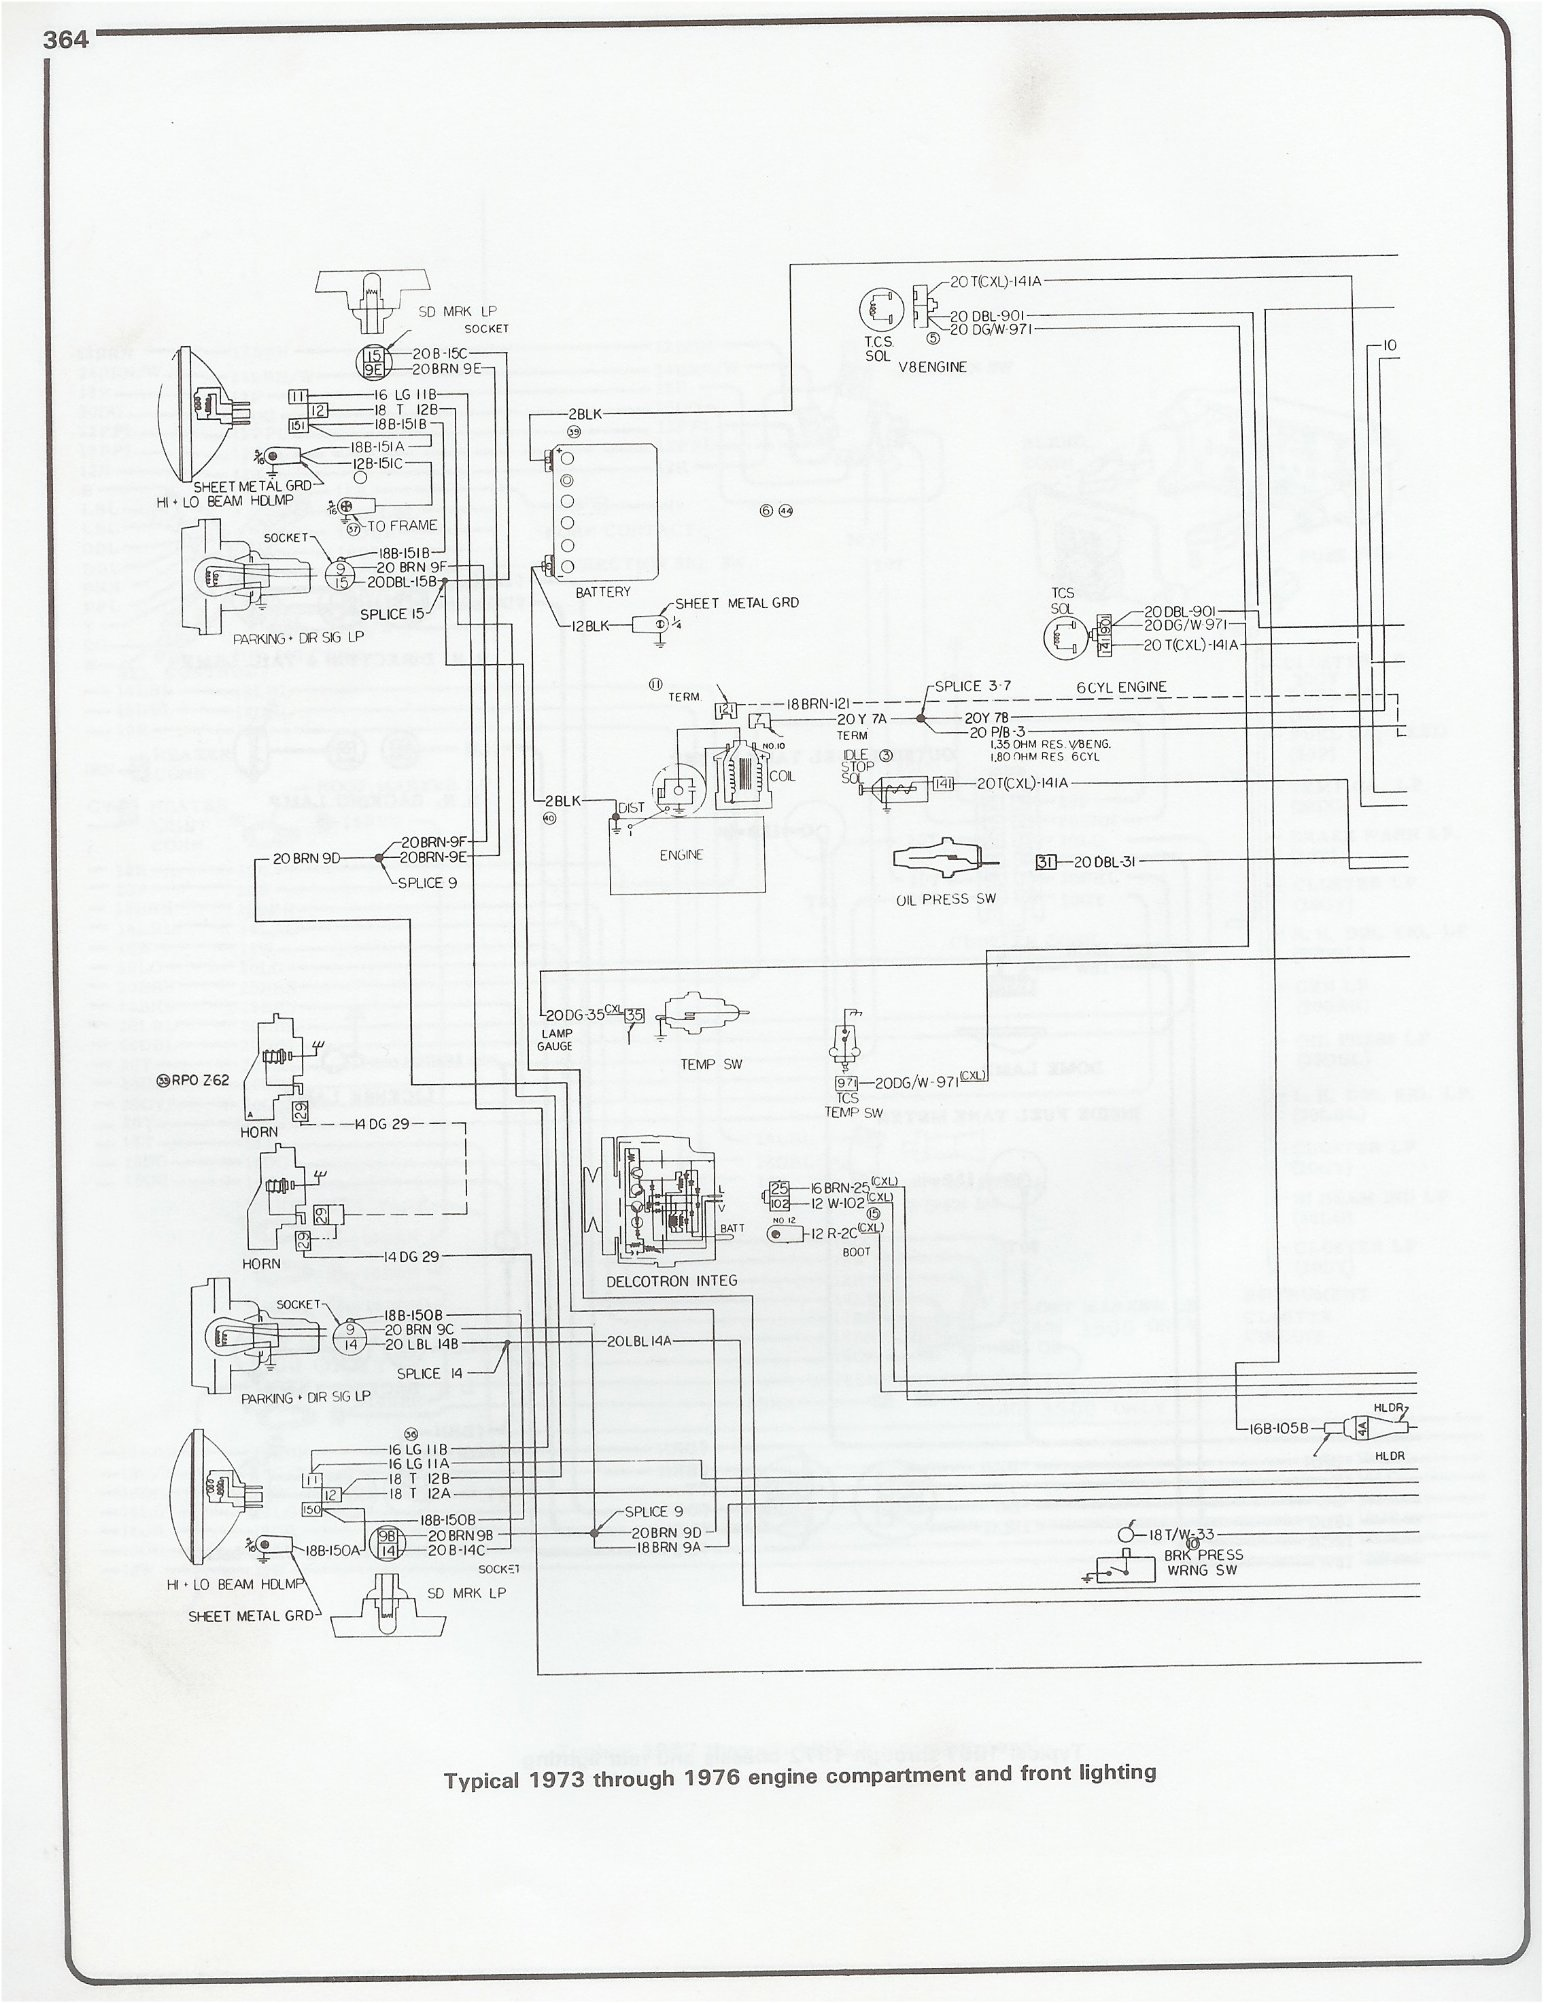 76 Jeep Cj7 Fuse Box Diagram Wiring Library C10 Data Schema Chevy